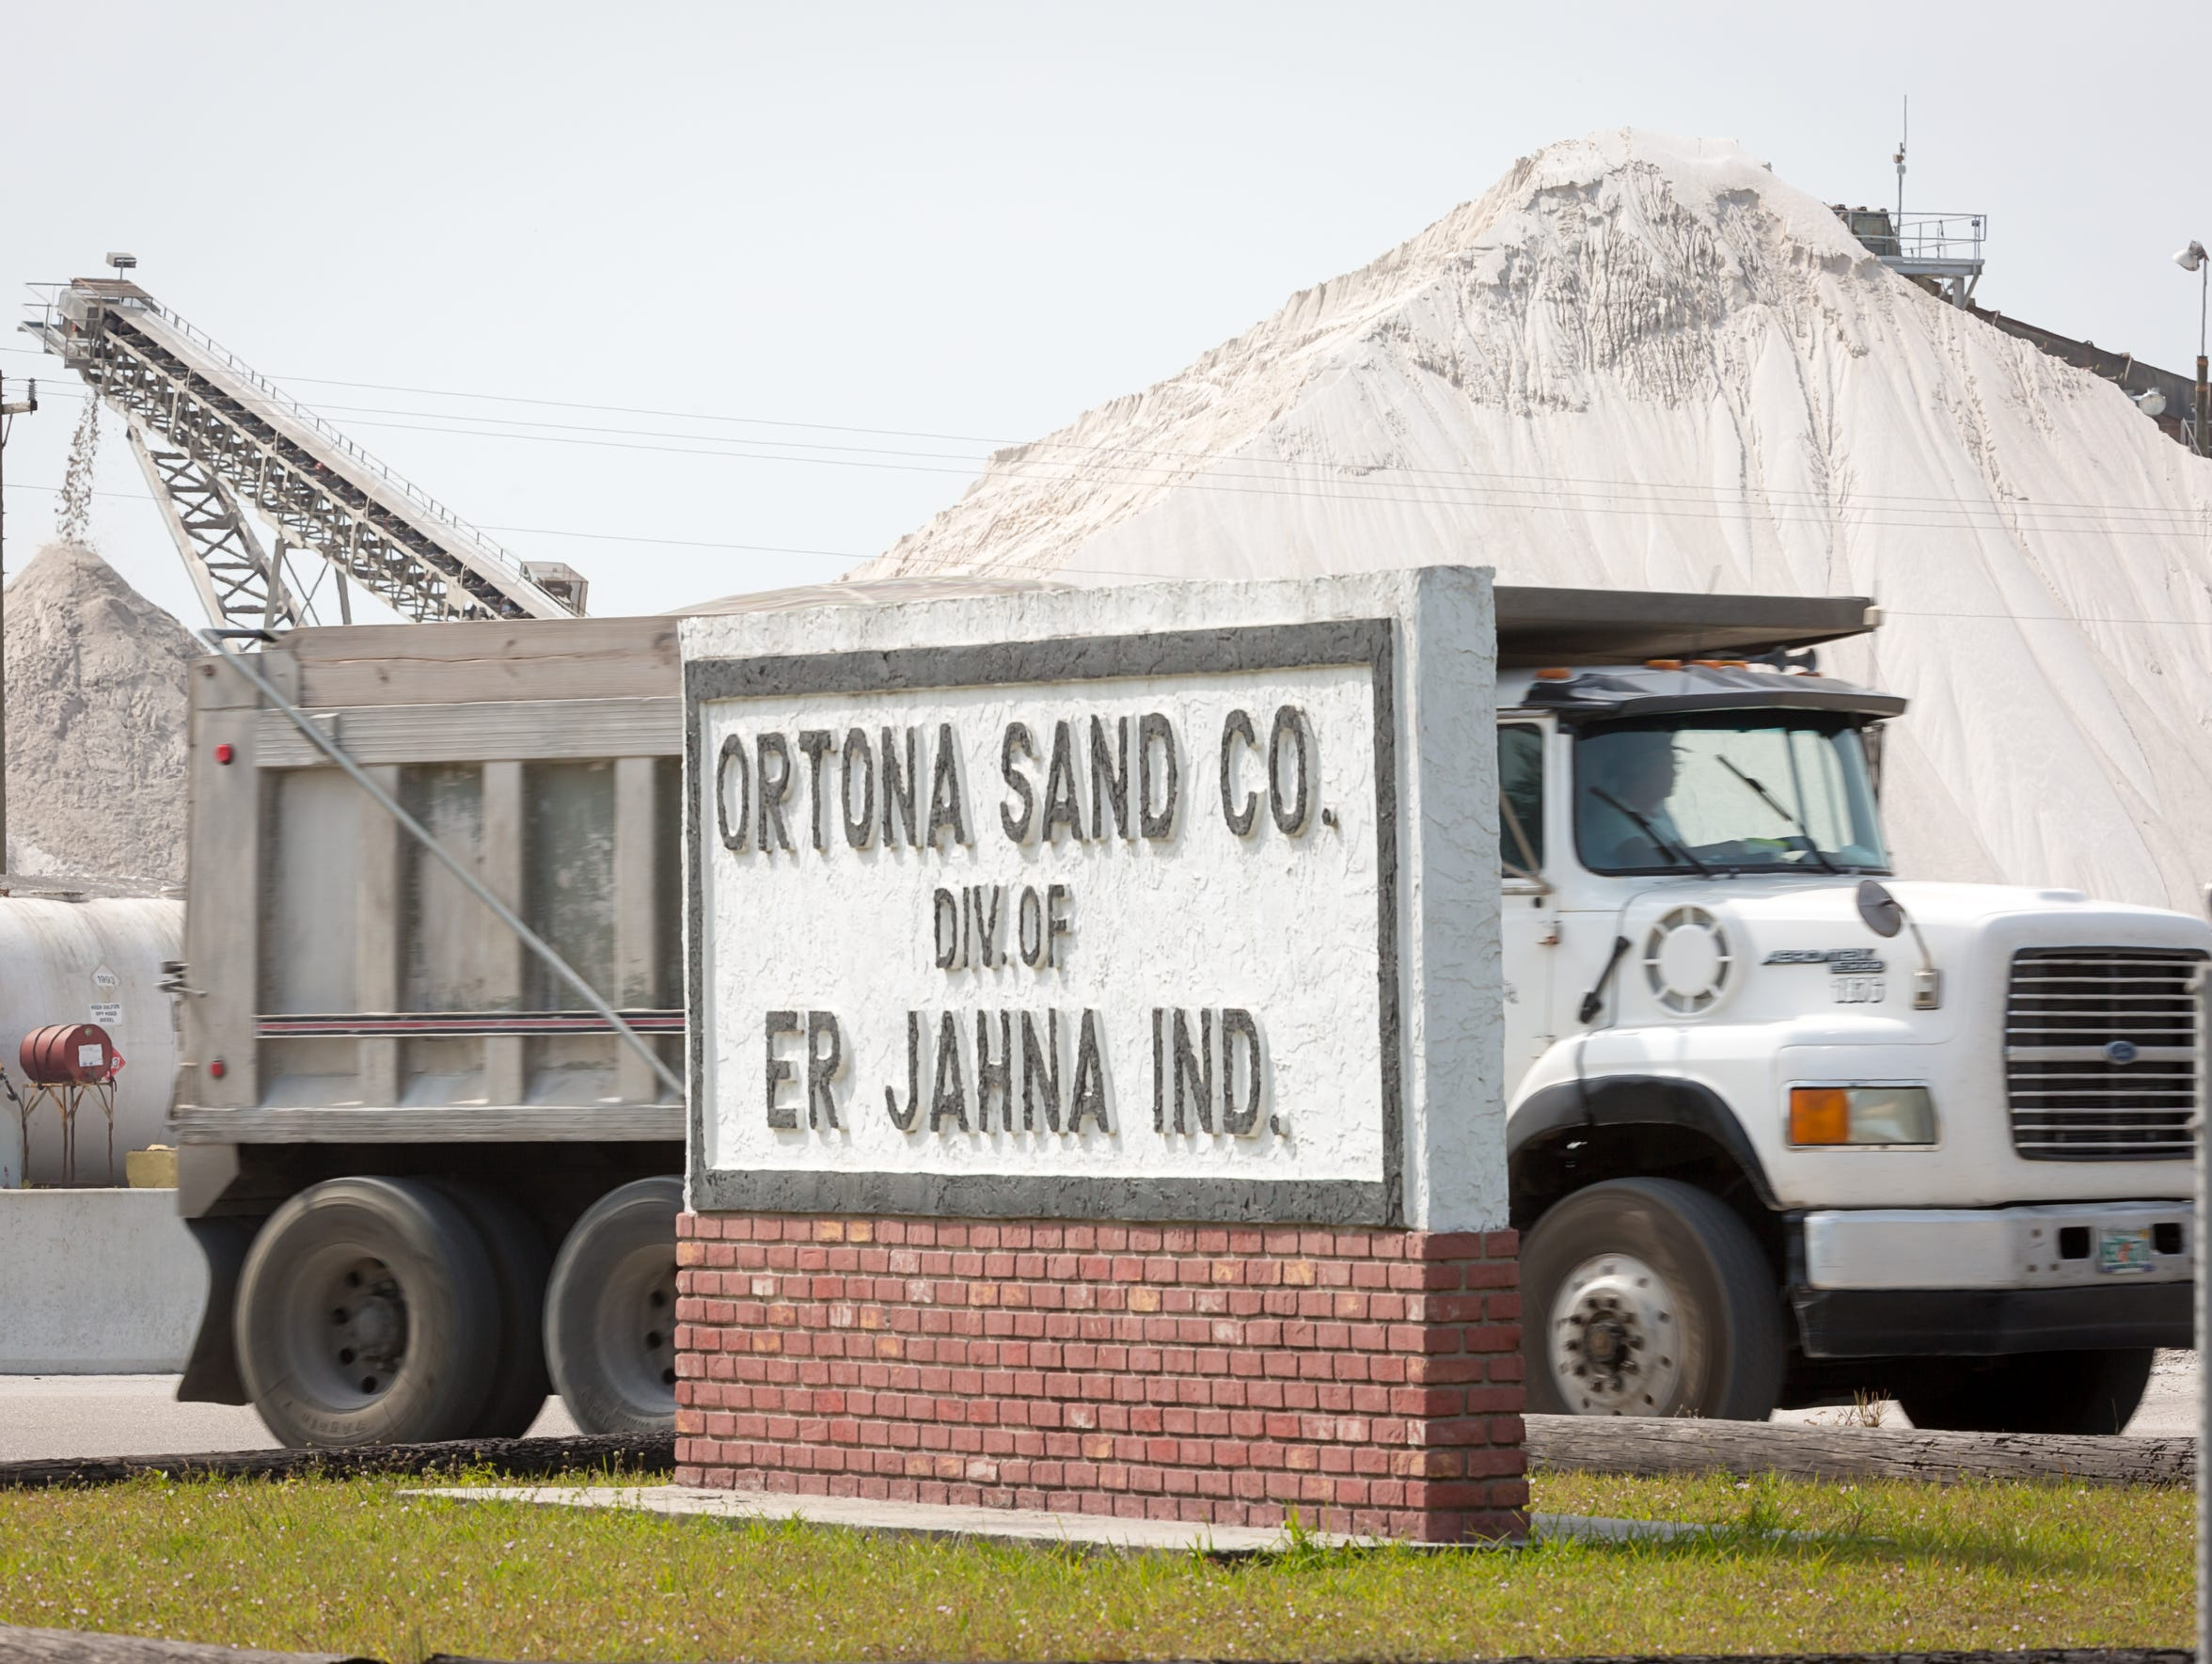 Dump trucks carry sand from an inland deposit at the